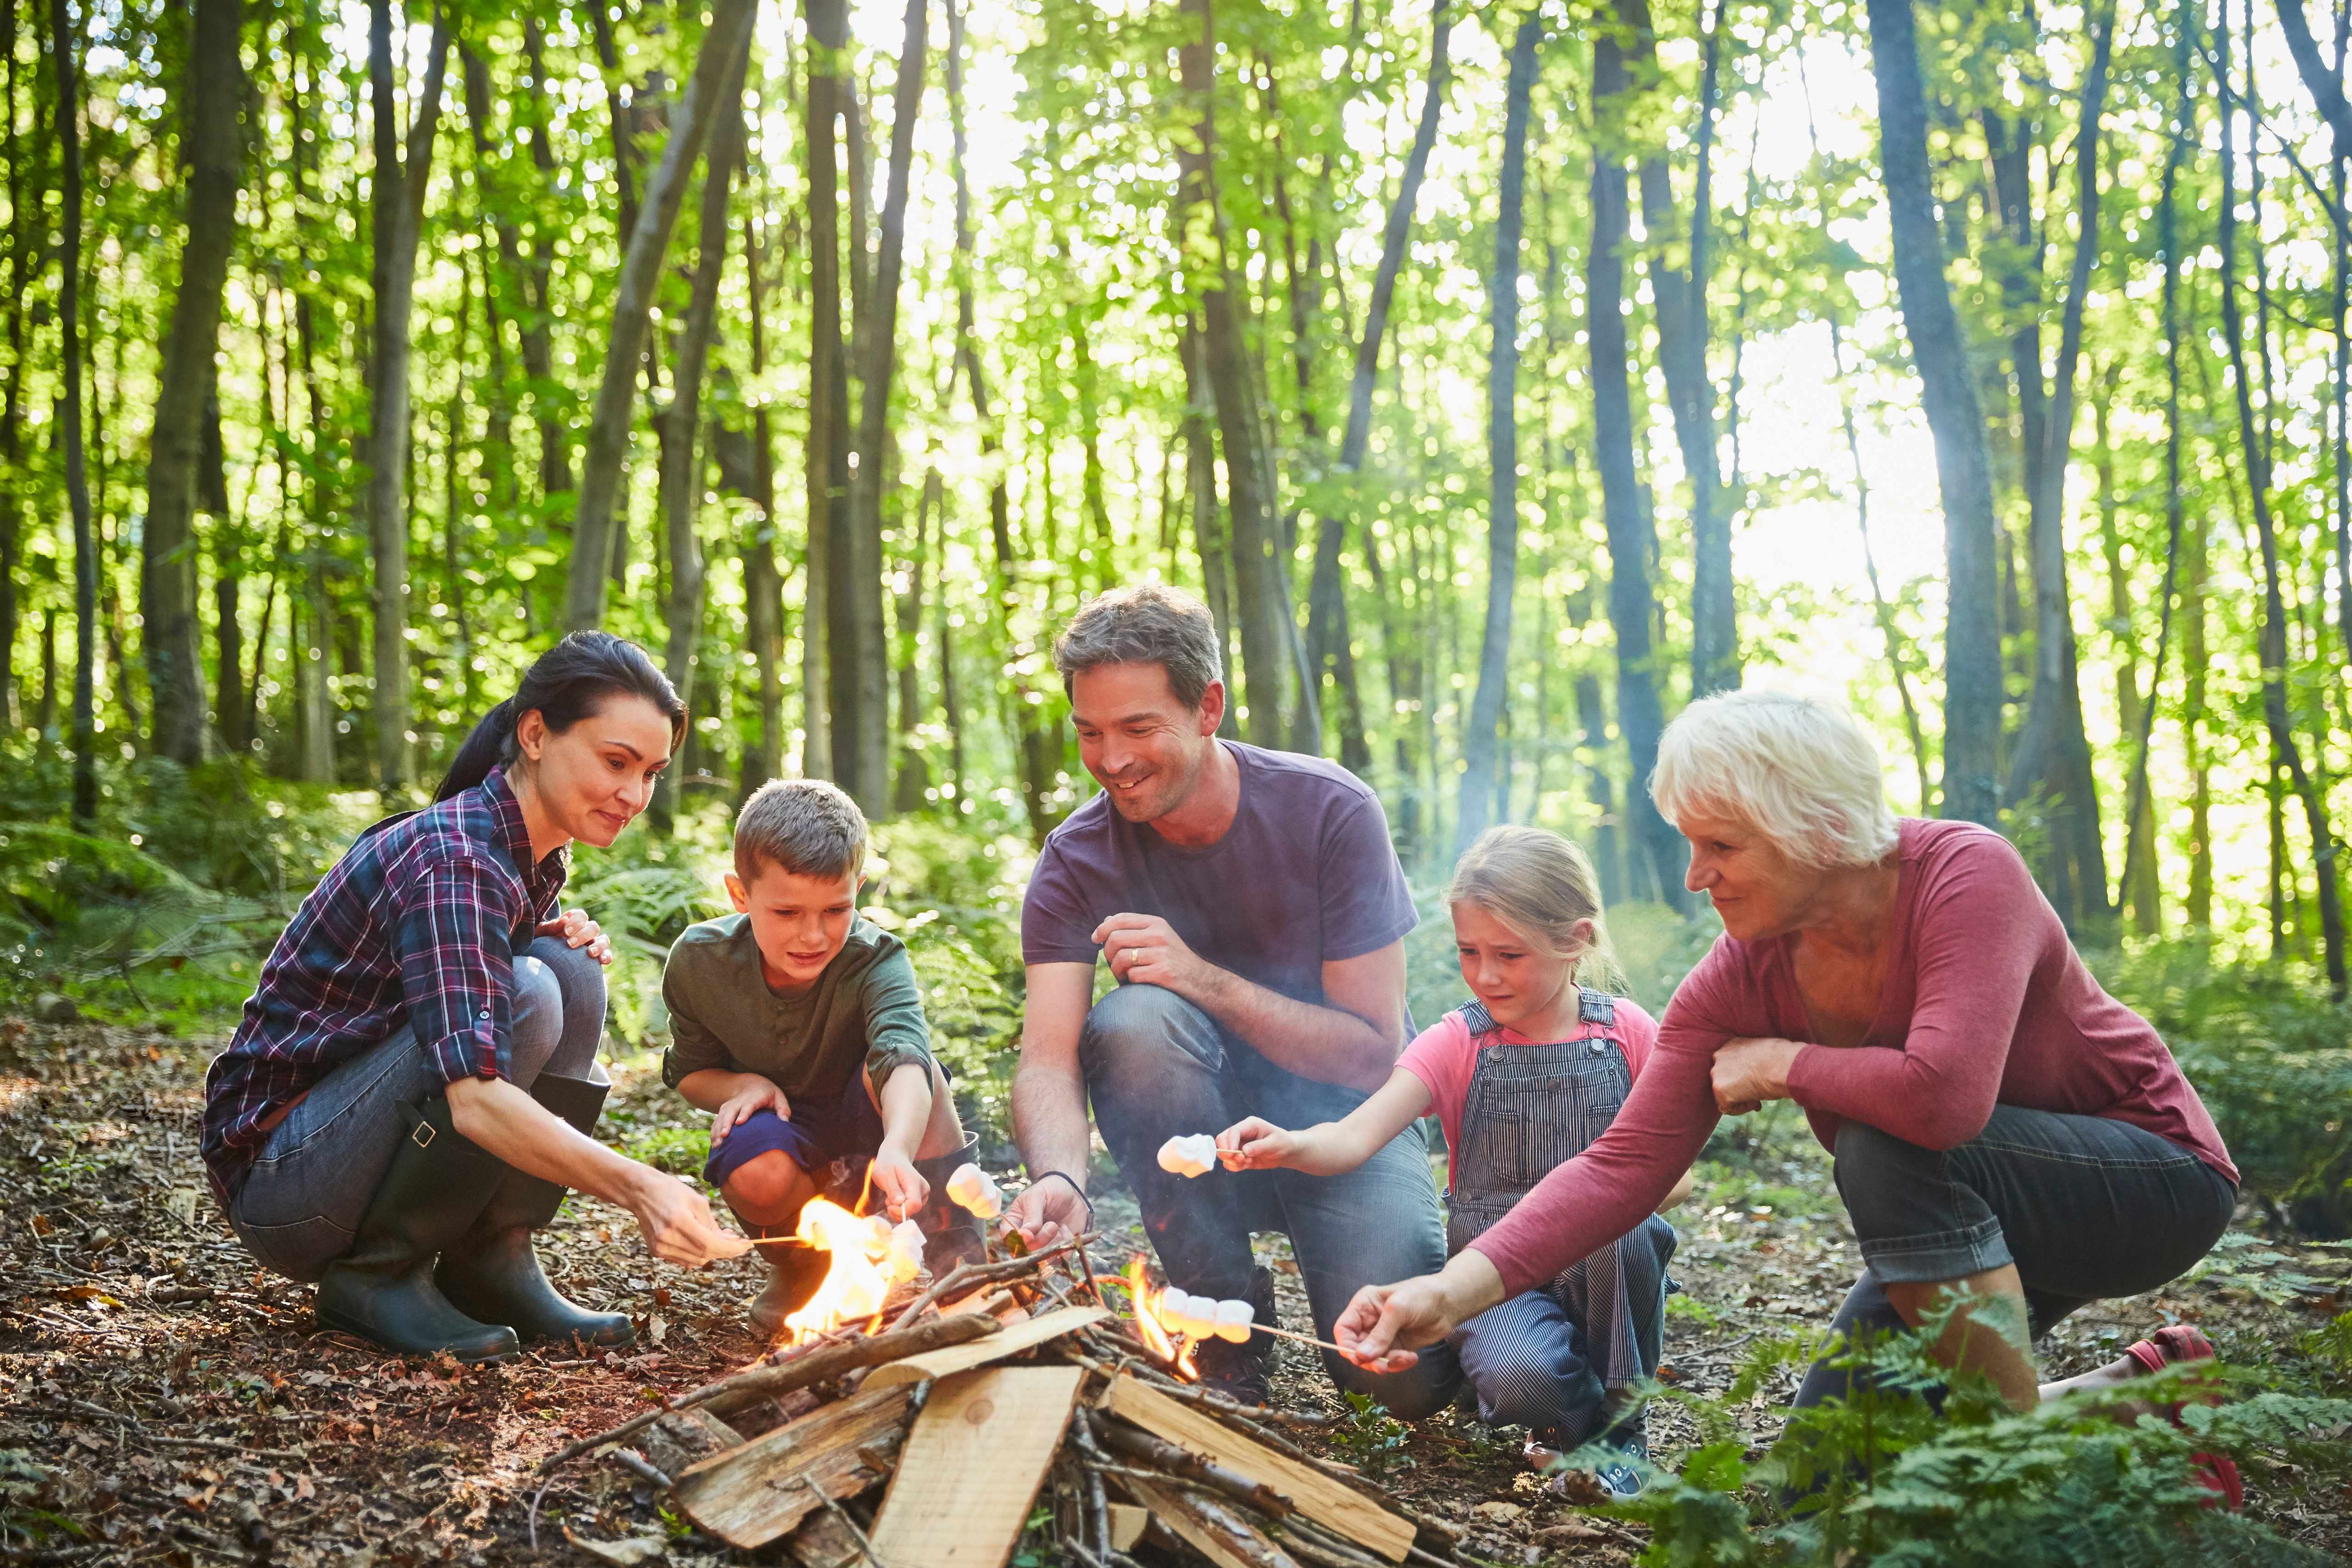 Family roasting marshmallows at campfire in forest